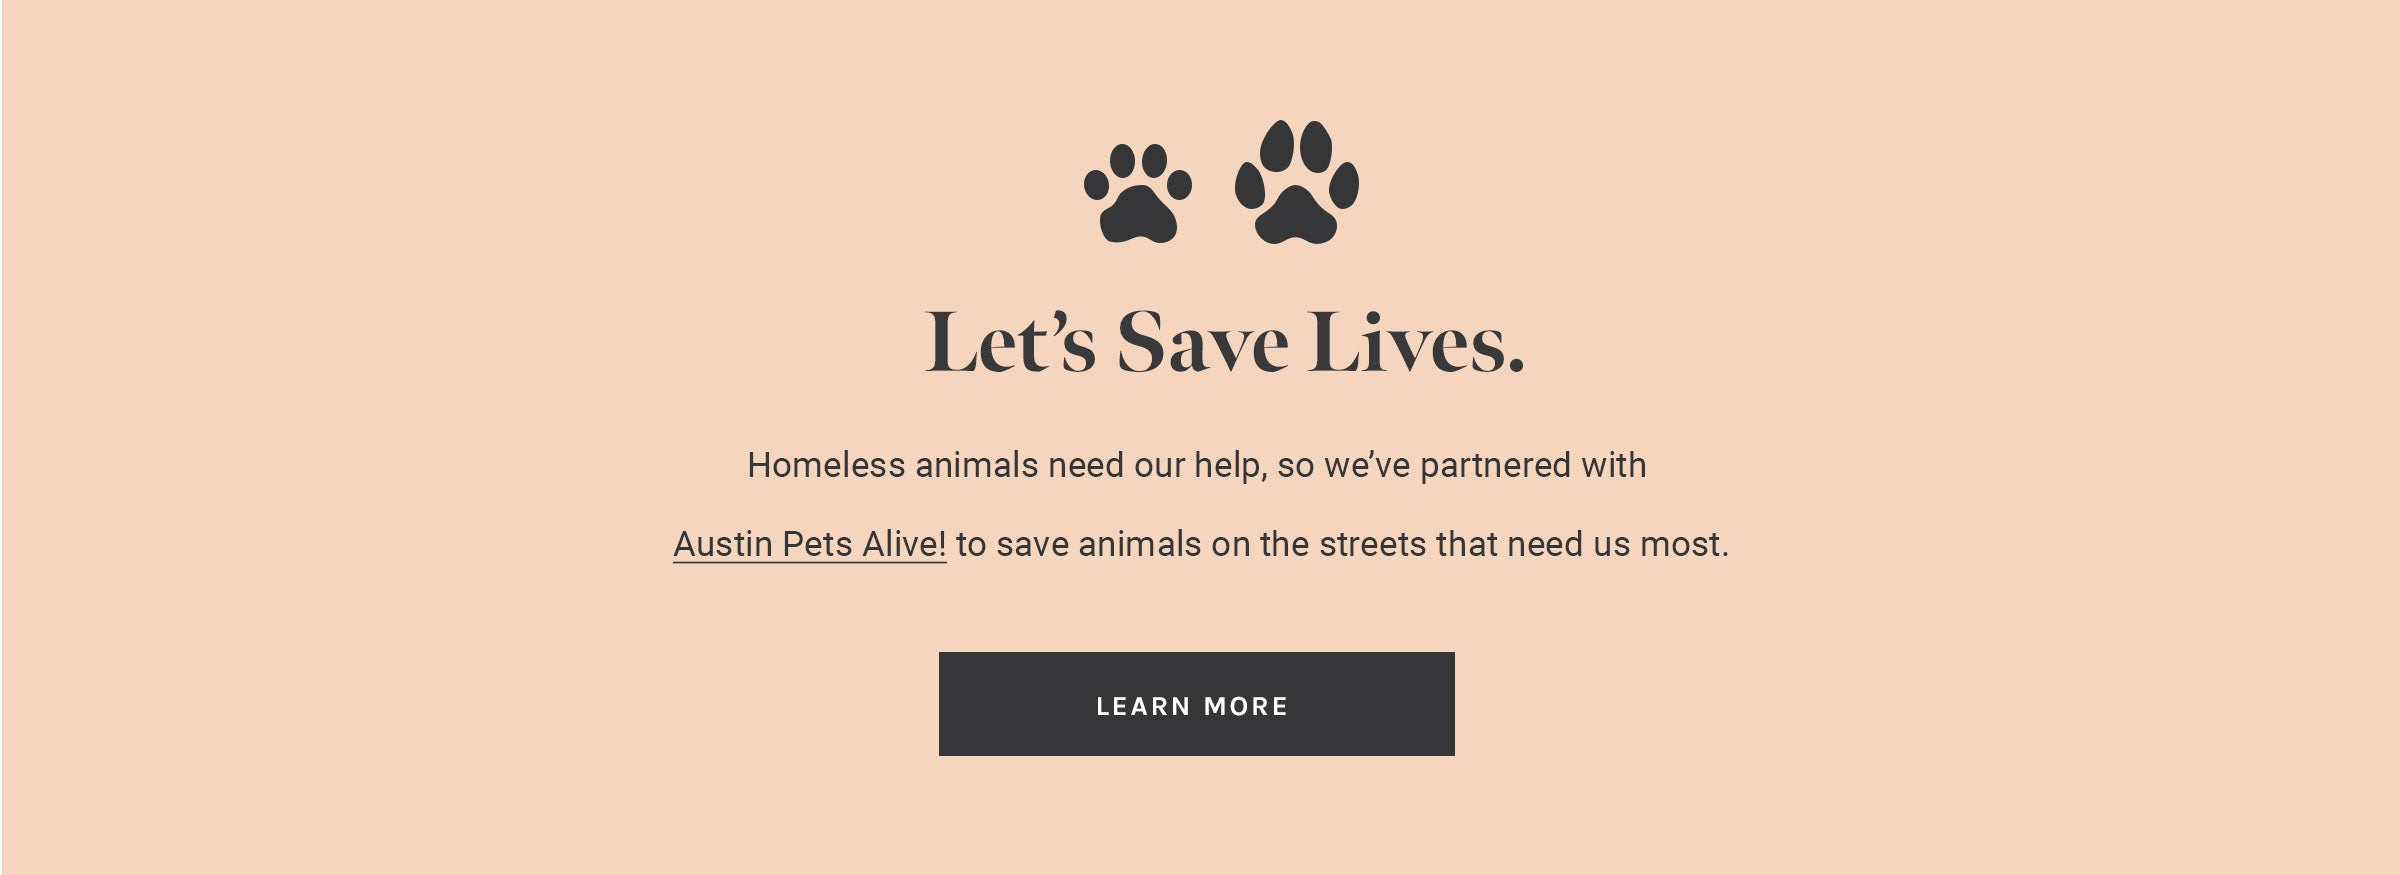 How to get 10% of your purchase donated to Austin Pets Alive!